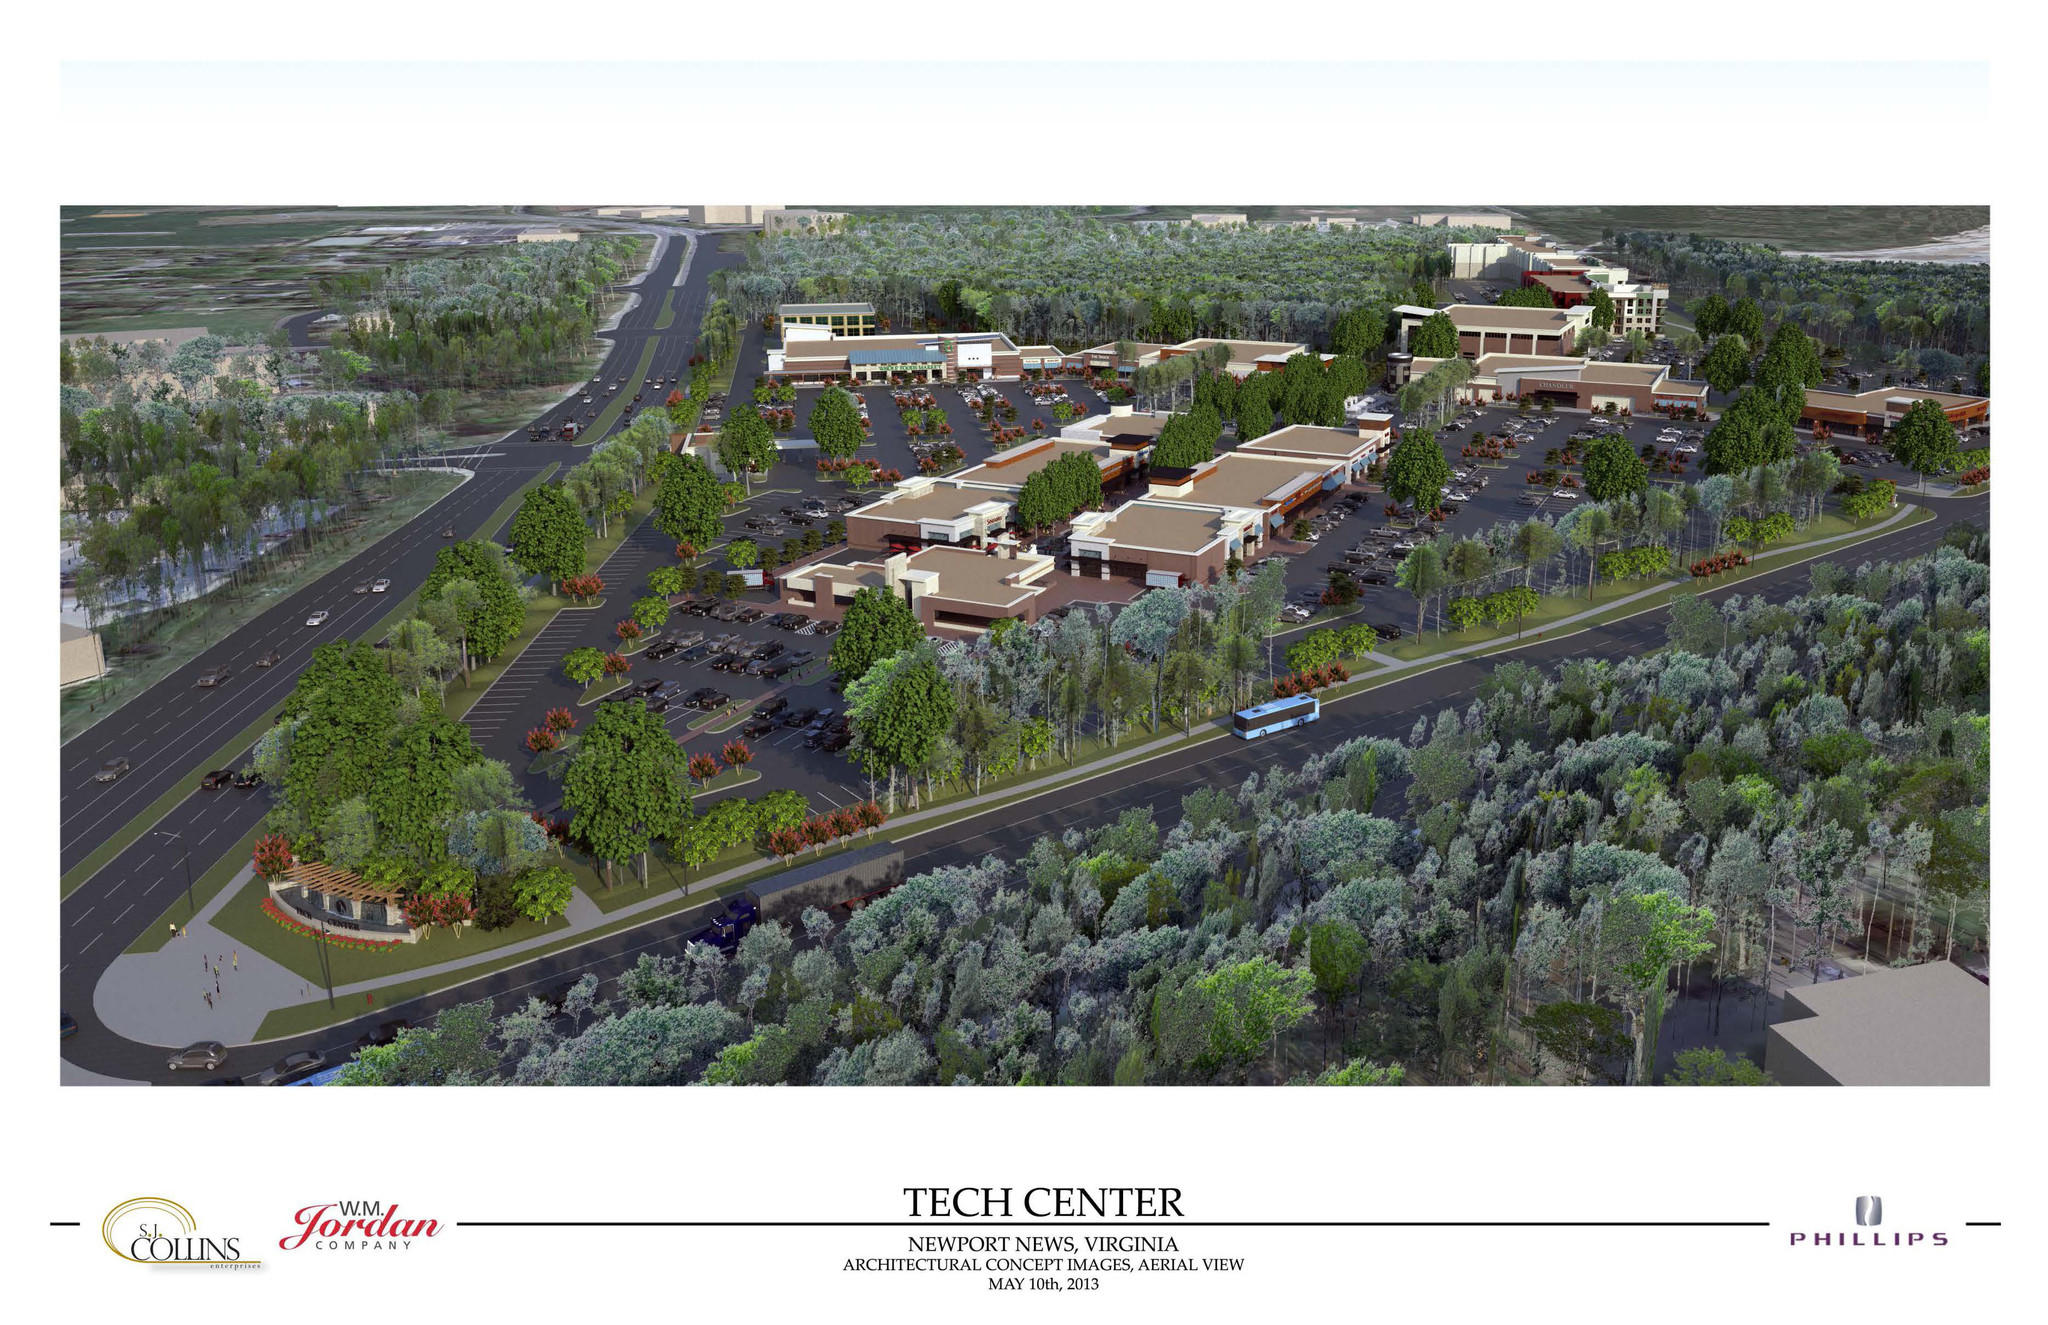 Rendering showing an aerial view of the mixed-use phase of the proposed Newport News Tech Center, to be built by W.M. Jordan Company. Retail stores are in the center. Whole Foods, which will be a tenant in the development, is the building with the green entrance awning above the retail shops. The development also includes a fitness center and apartments on the right in the distance.